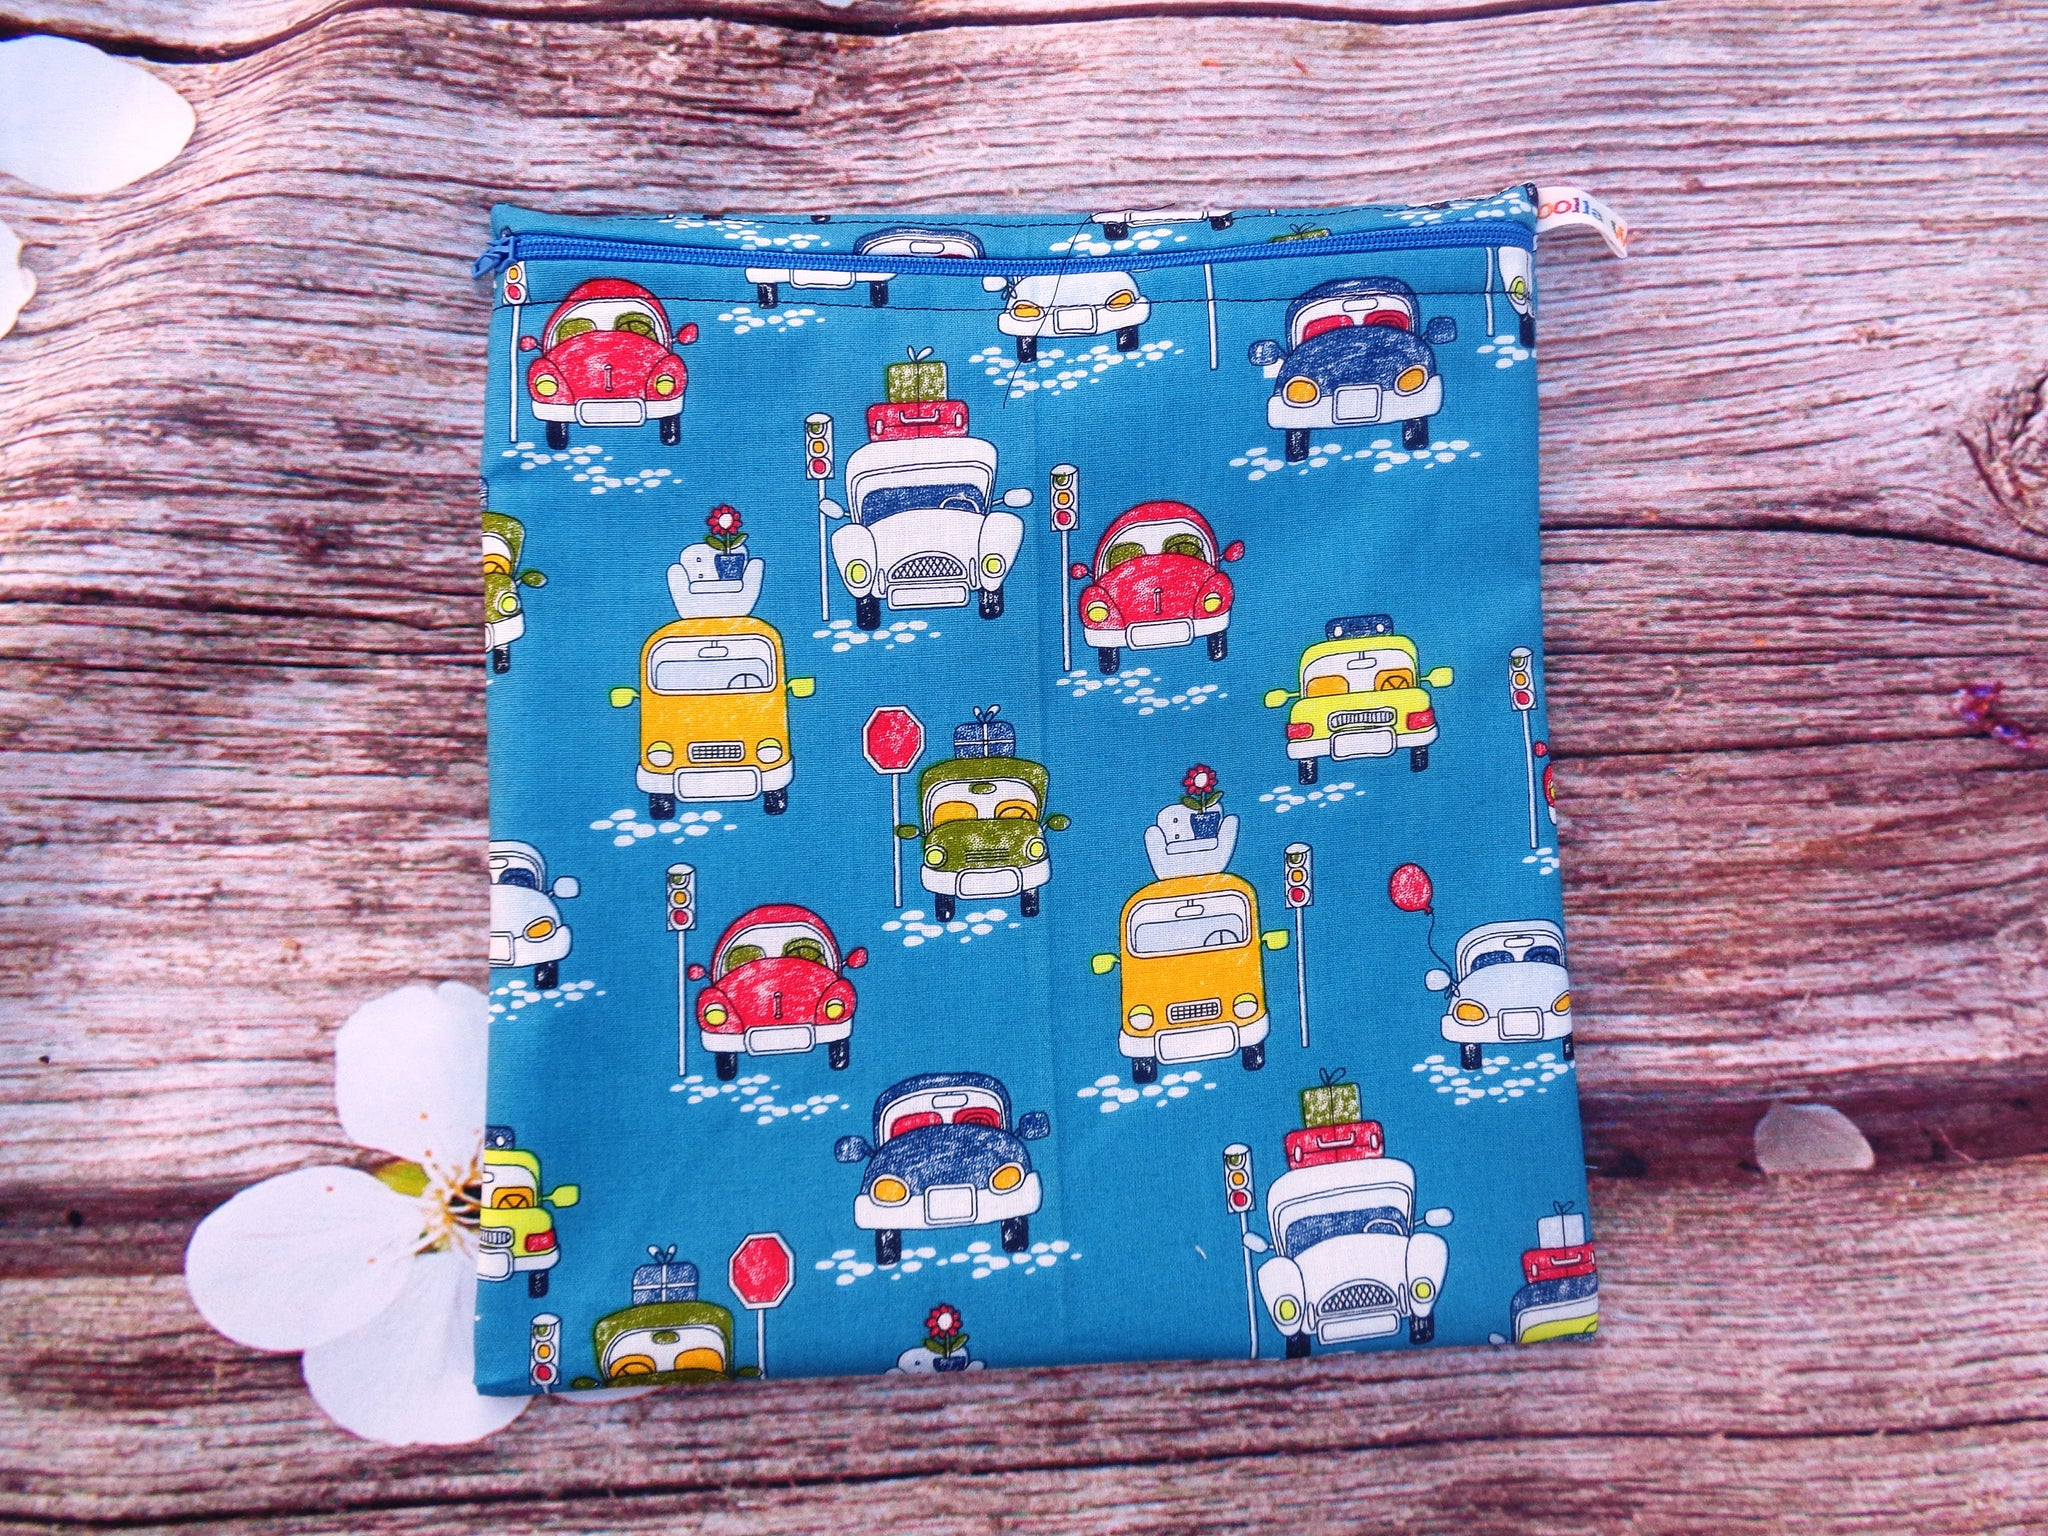 Cars Luggage - Large Poppins Pouch - Waterproof, Washable, Food Safe